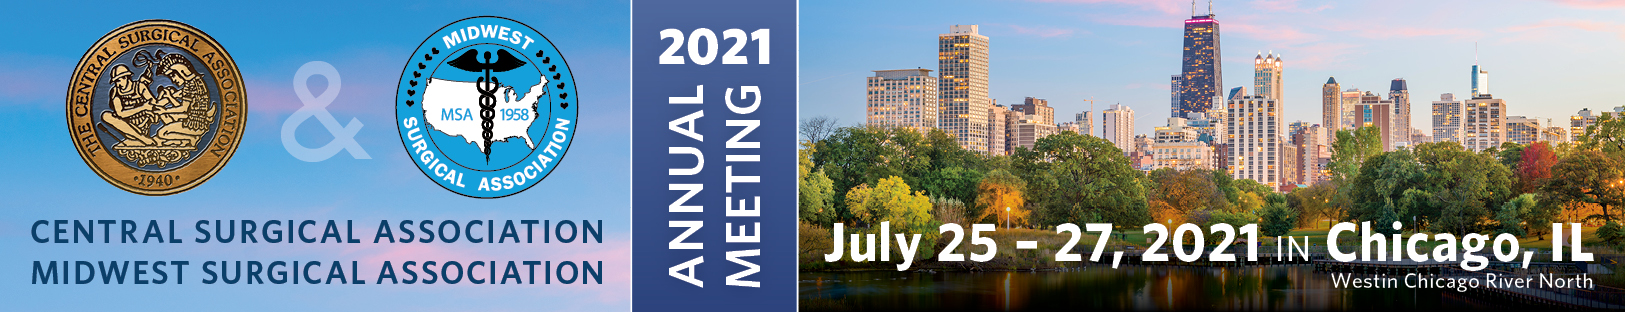 MSA 2019 Annual Meeting